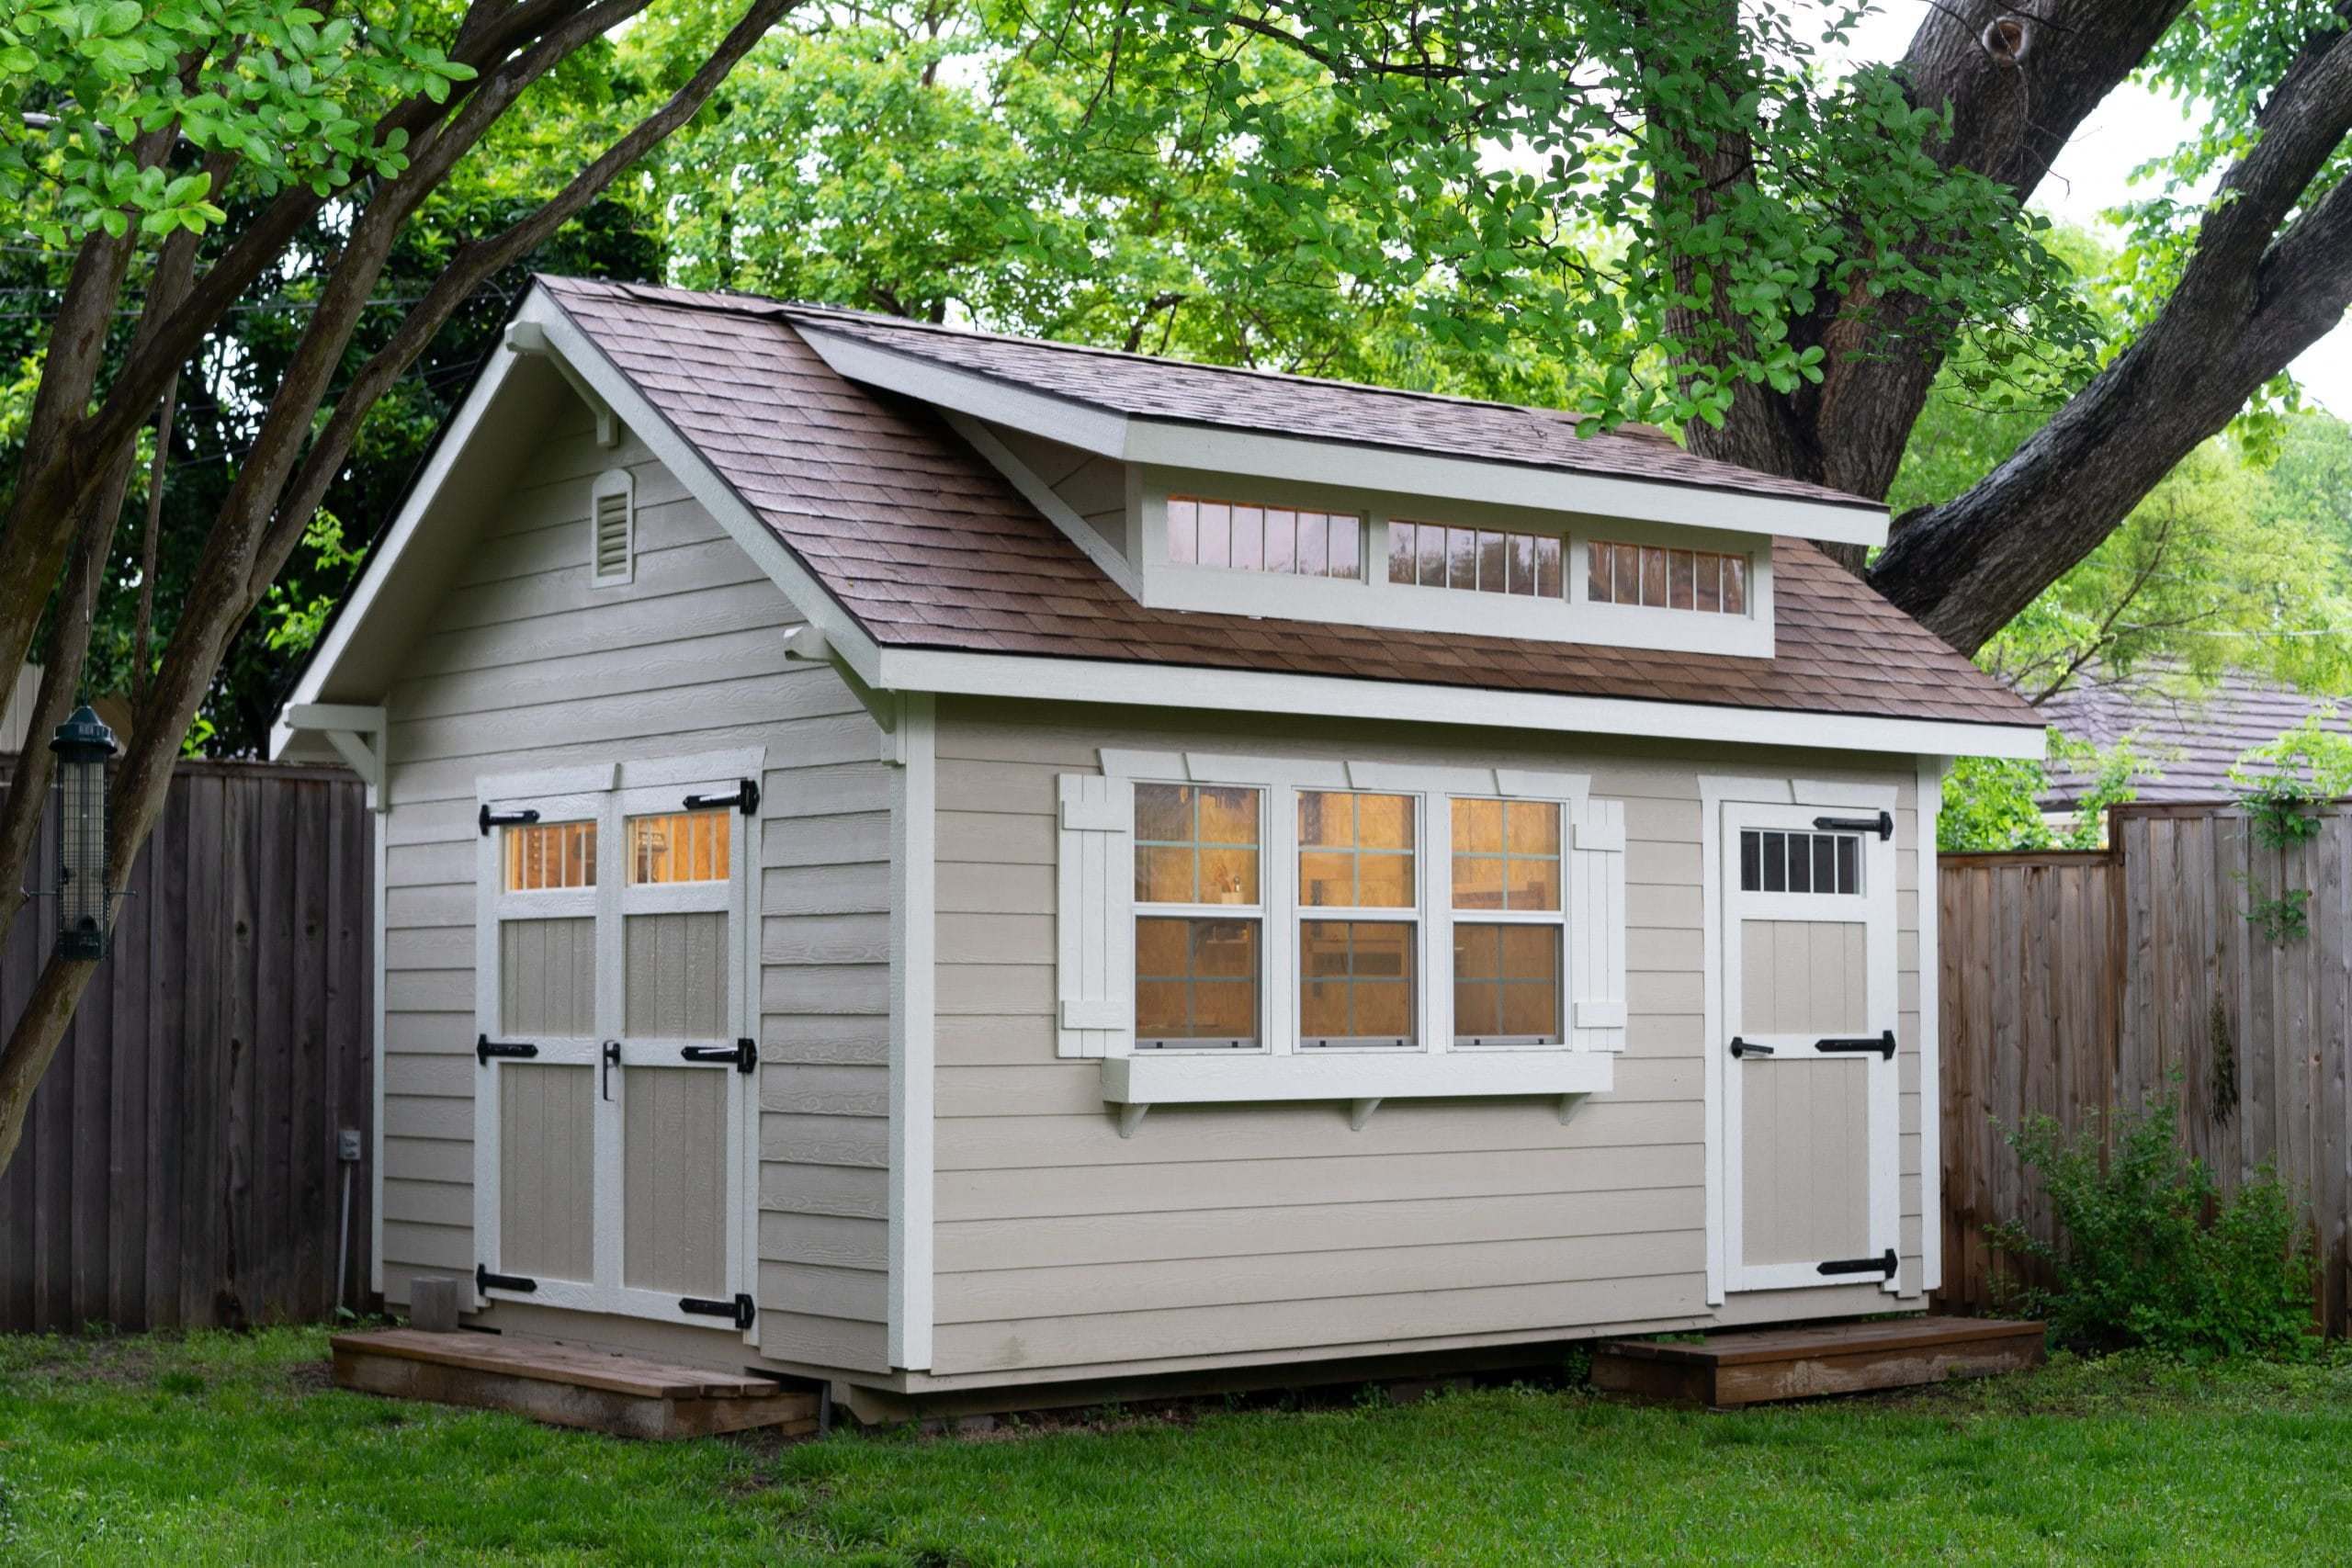 Architect Chooses Elite Shed to Match Home